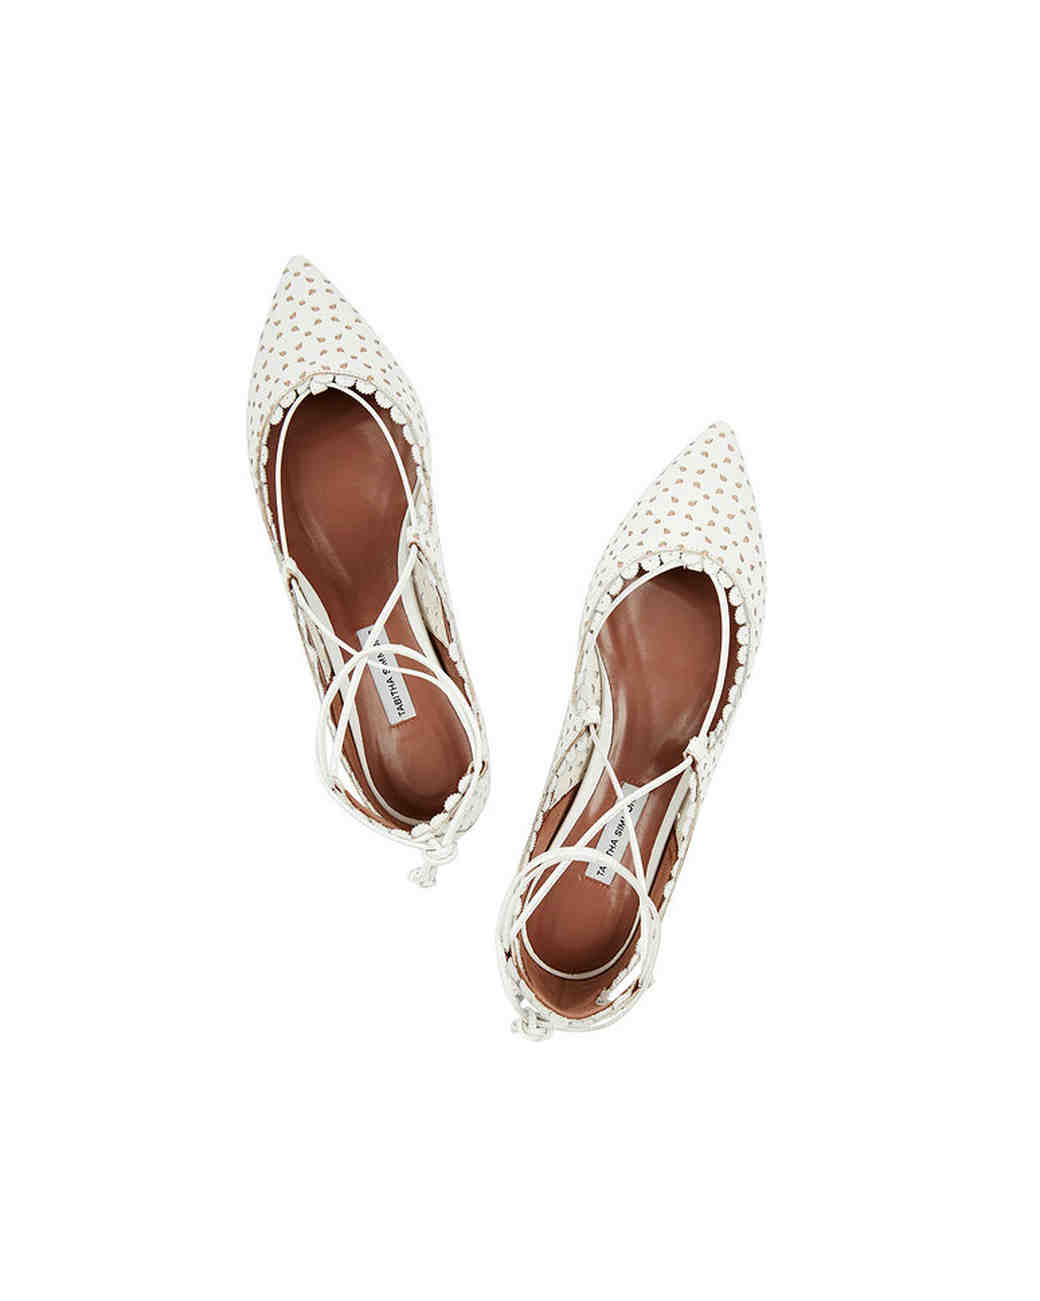 shoes that won't sink Tabitha Simmons perforated flats